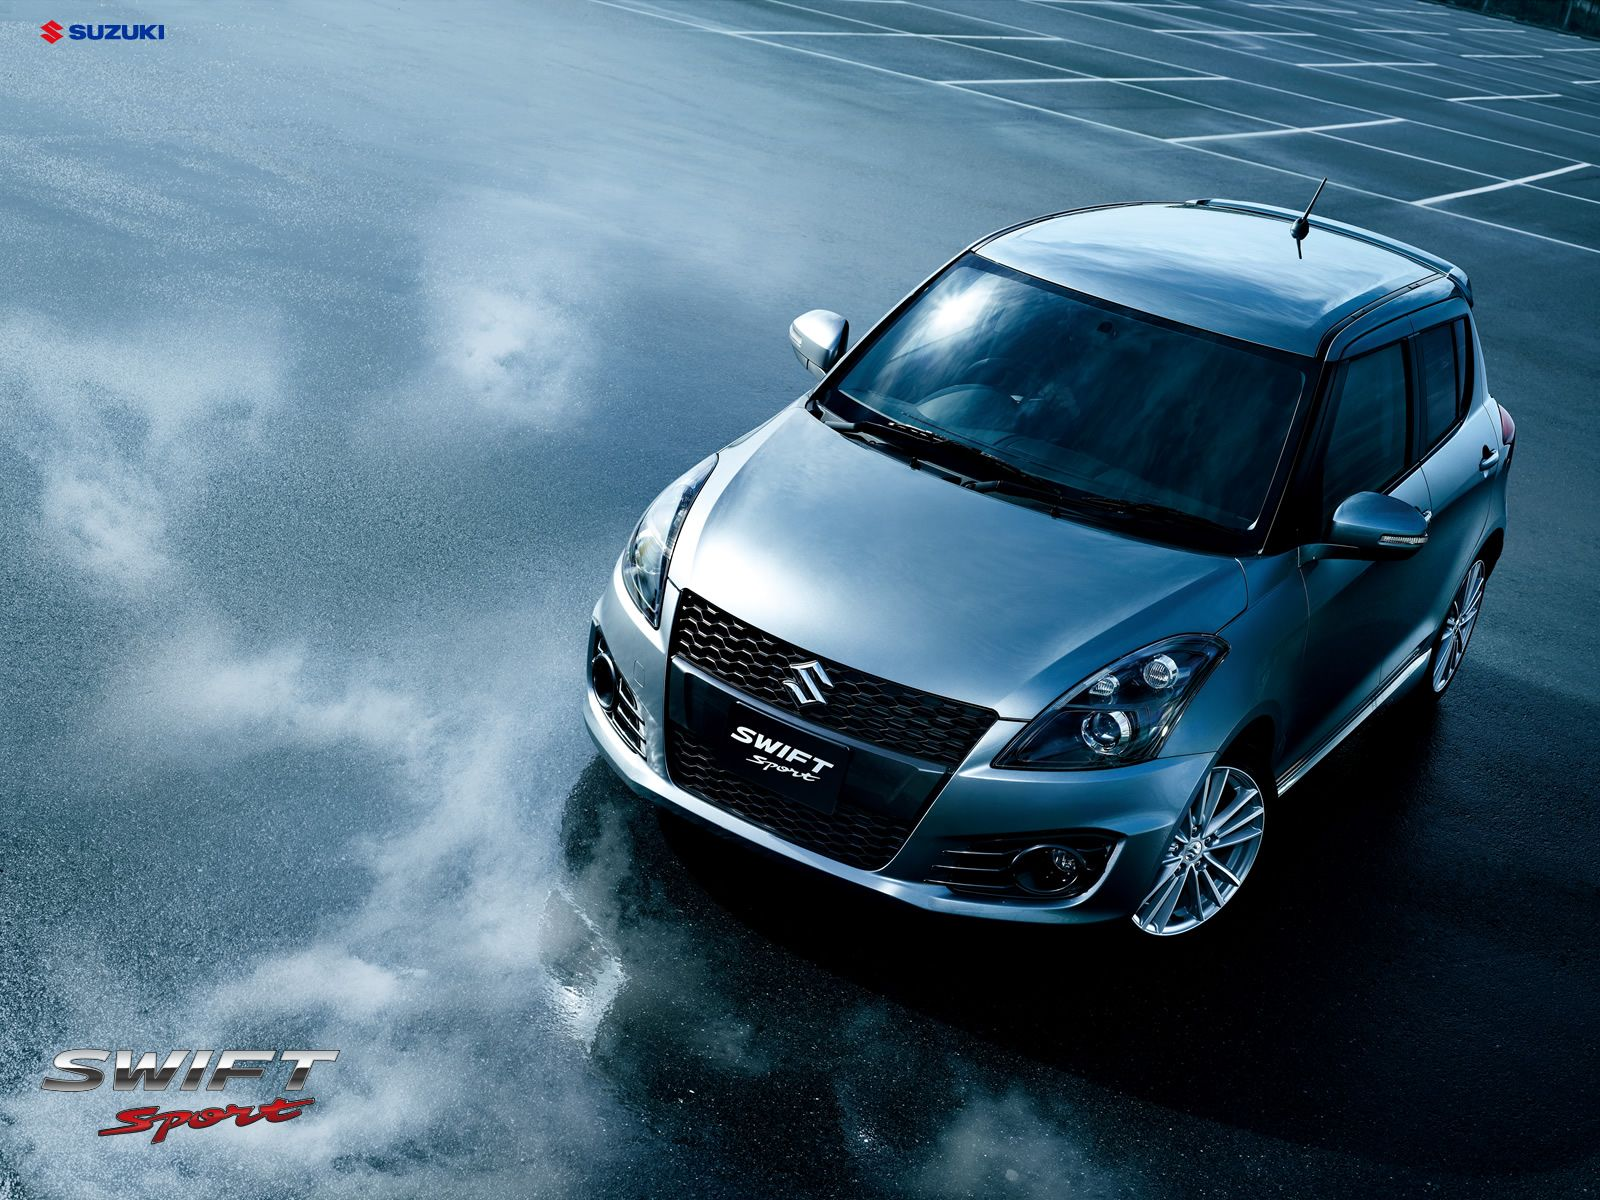 Suzuki swift sport 2013 pictures to pin on pinterest - Suzuki Swift Sport Wallpaper With A Blistering New Design Powerful 100kw Engine Fierce Power